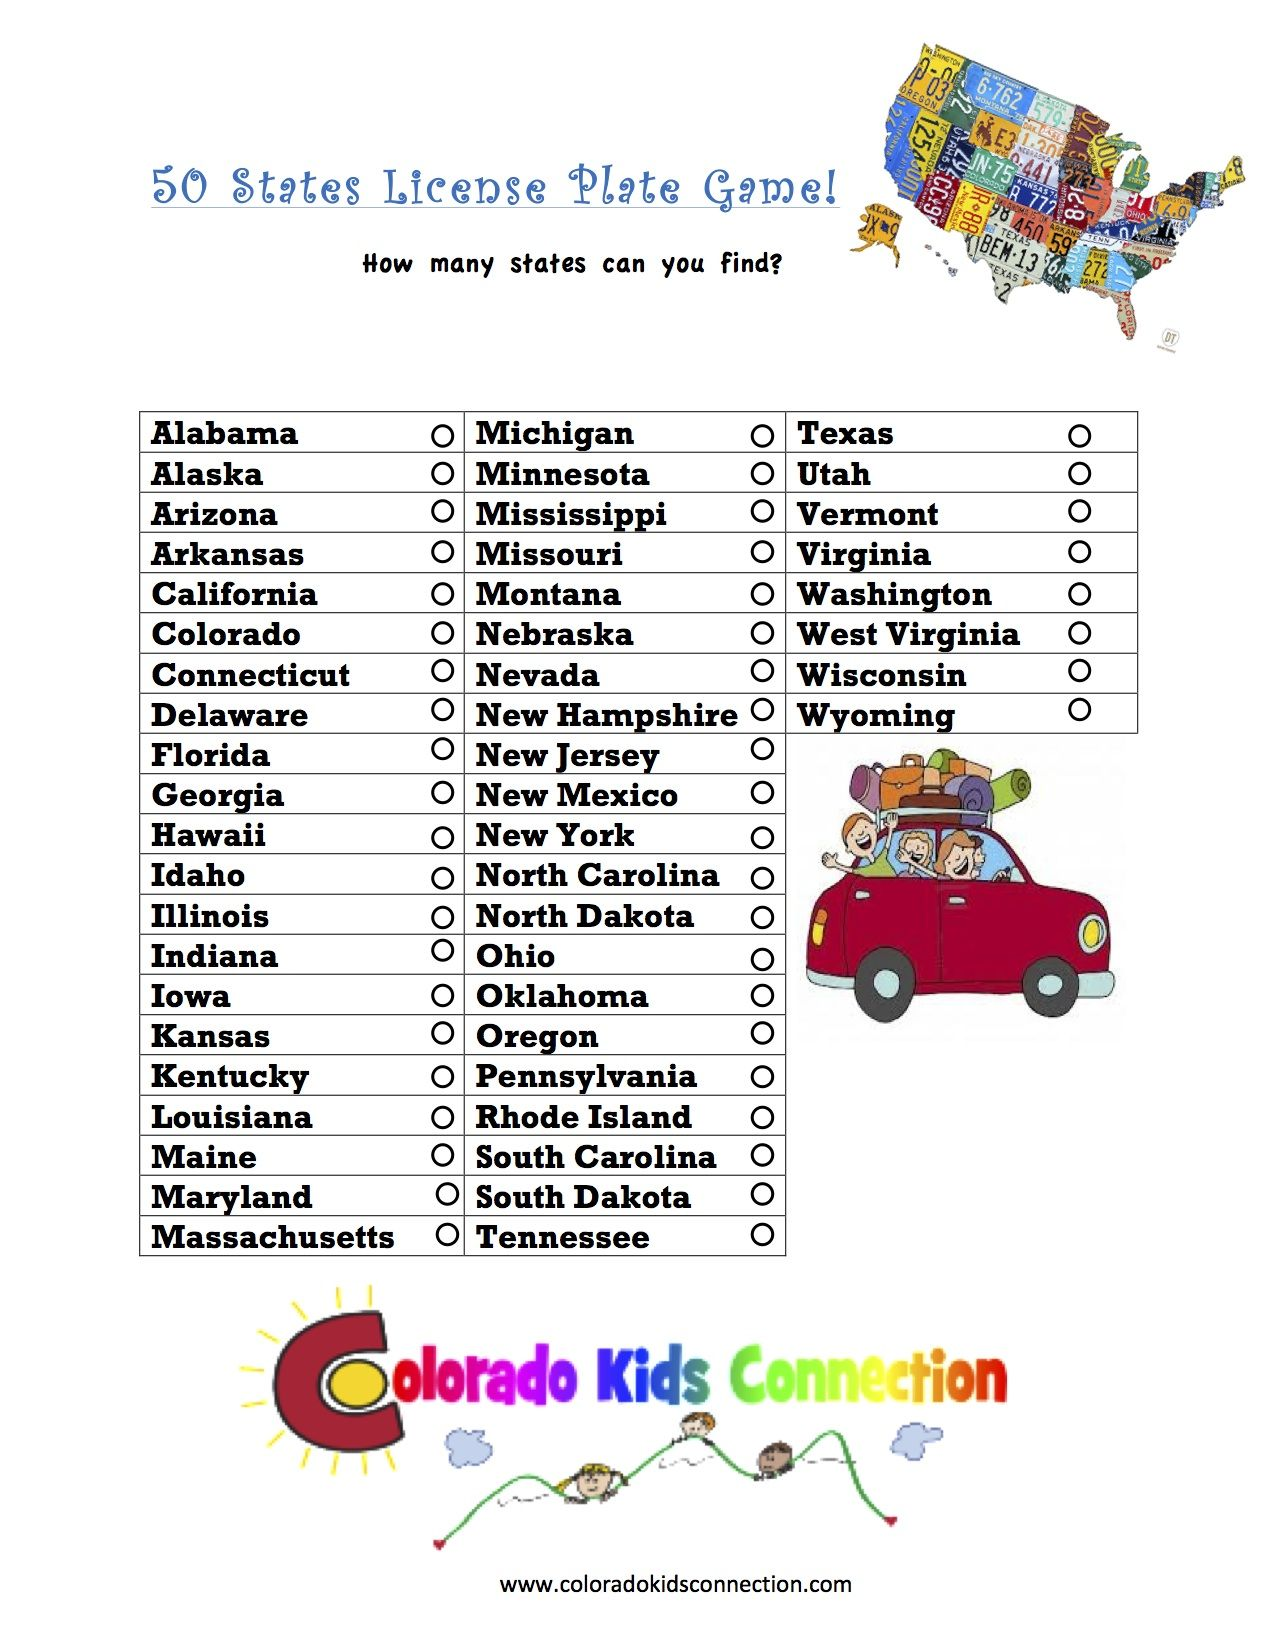 Great Printable Fun Travel Activity For Kids And Teens To Find The Different State License